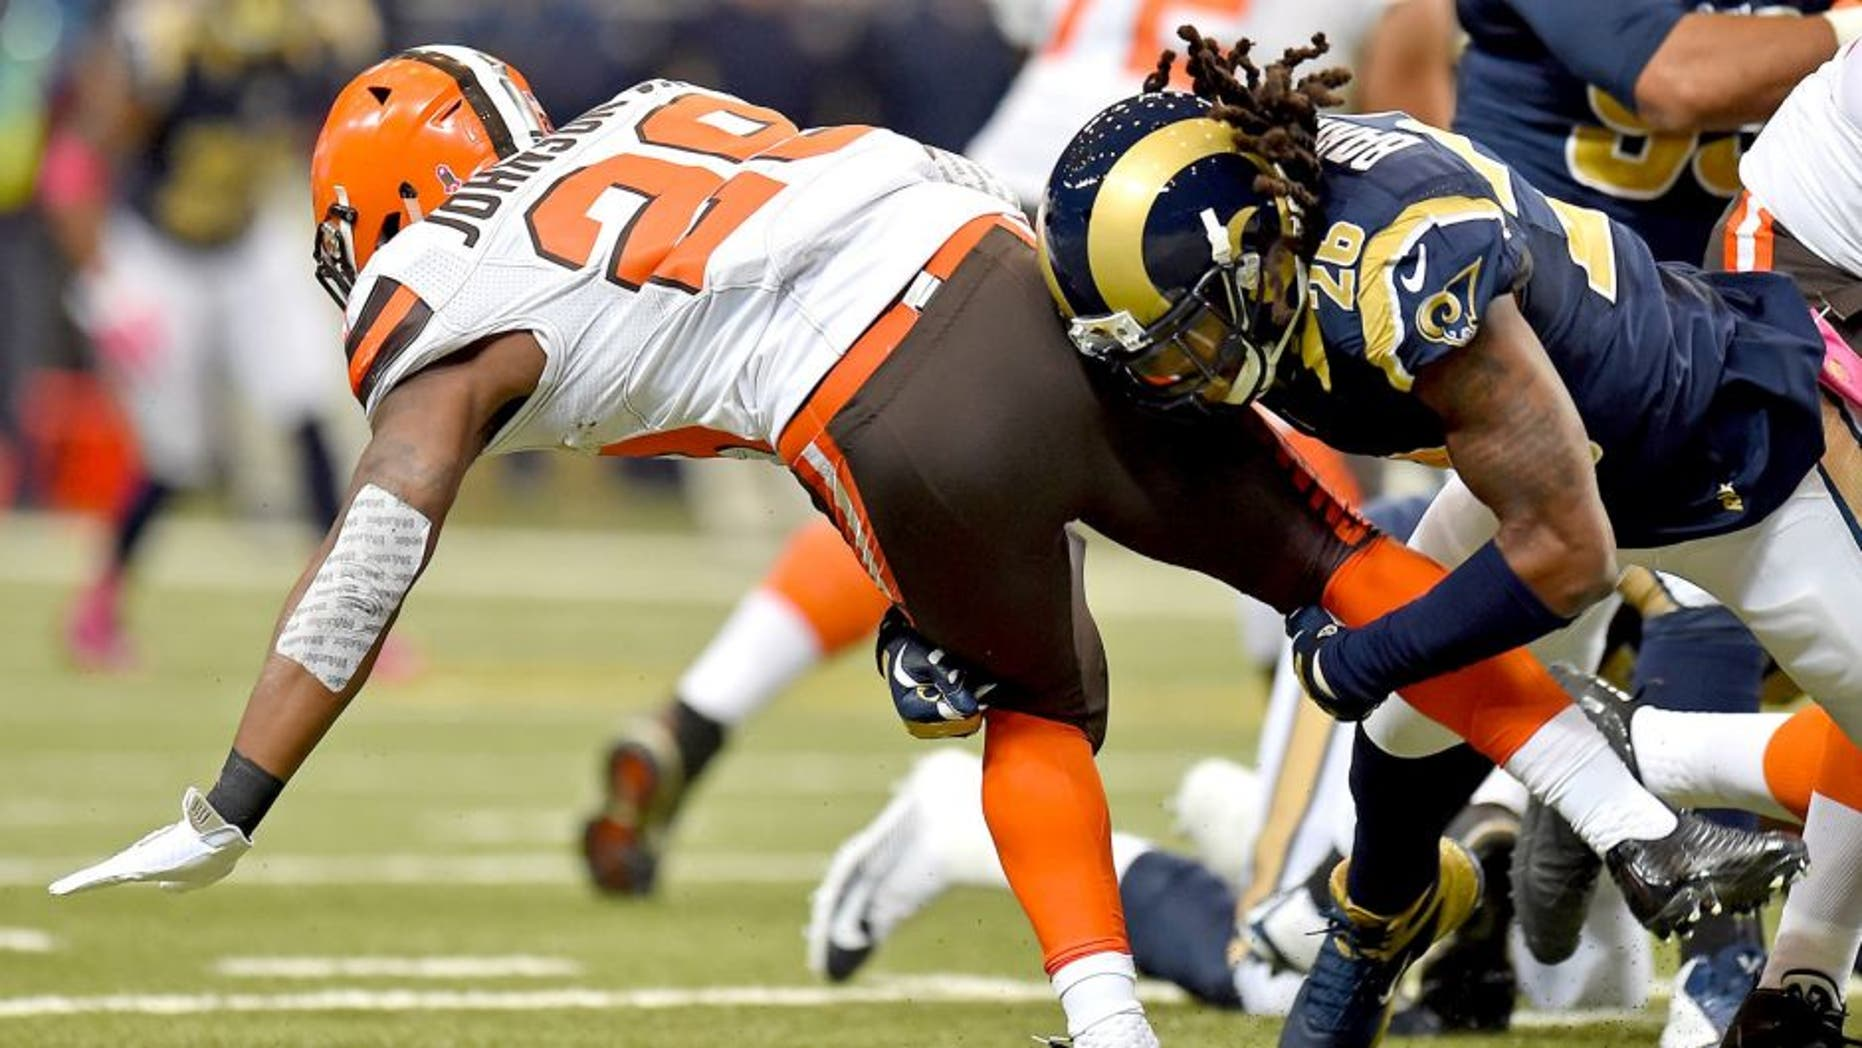 Oct 25, 2015; St. Louis, MO, USA; St. Louis Rams strong safety Mark Barron (26) tackles Cleveland Browns running back Duke Johnson (29) during the first half at the Edward Jones Dome. Mandatory Credit: Jasen Vinlove-USA TODAY Sports